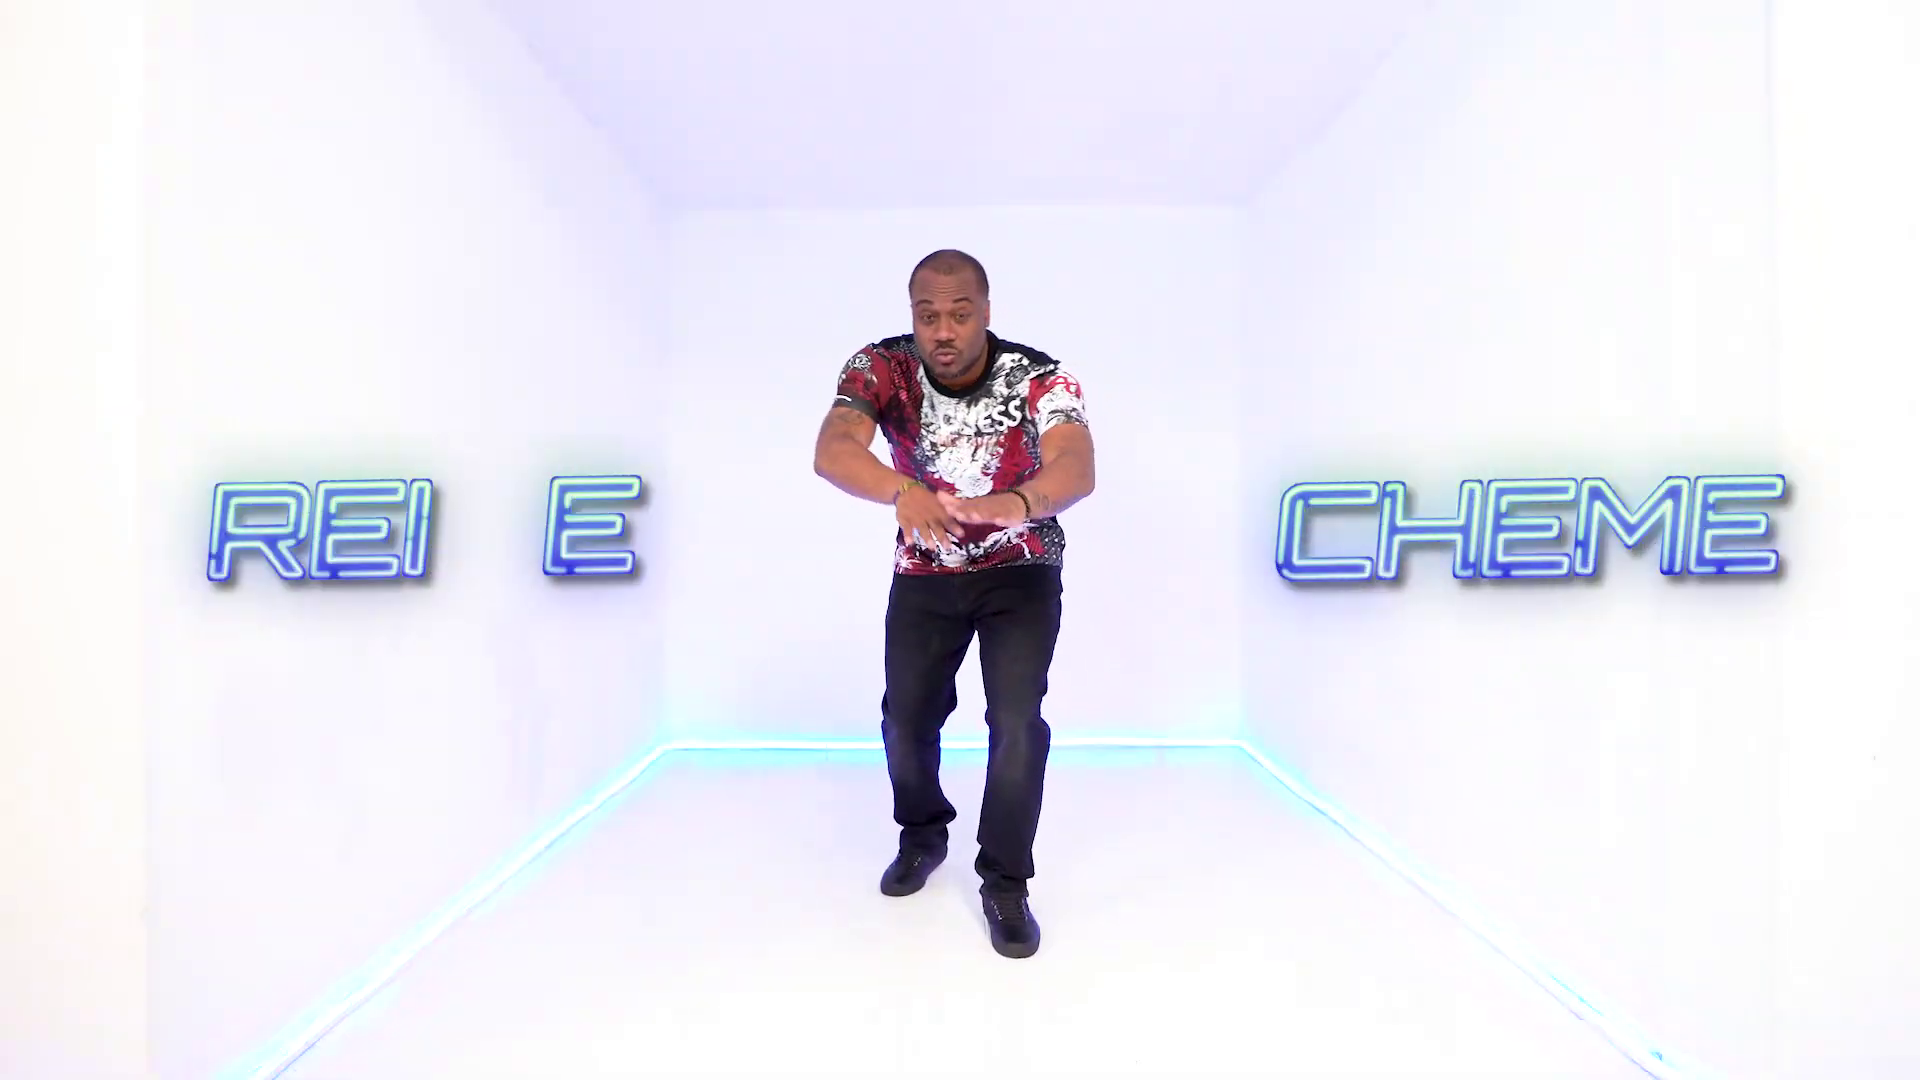 VIDEO | Reime Schemes Ft. Shady Blue – Paradise